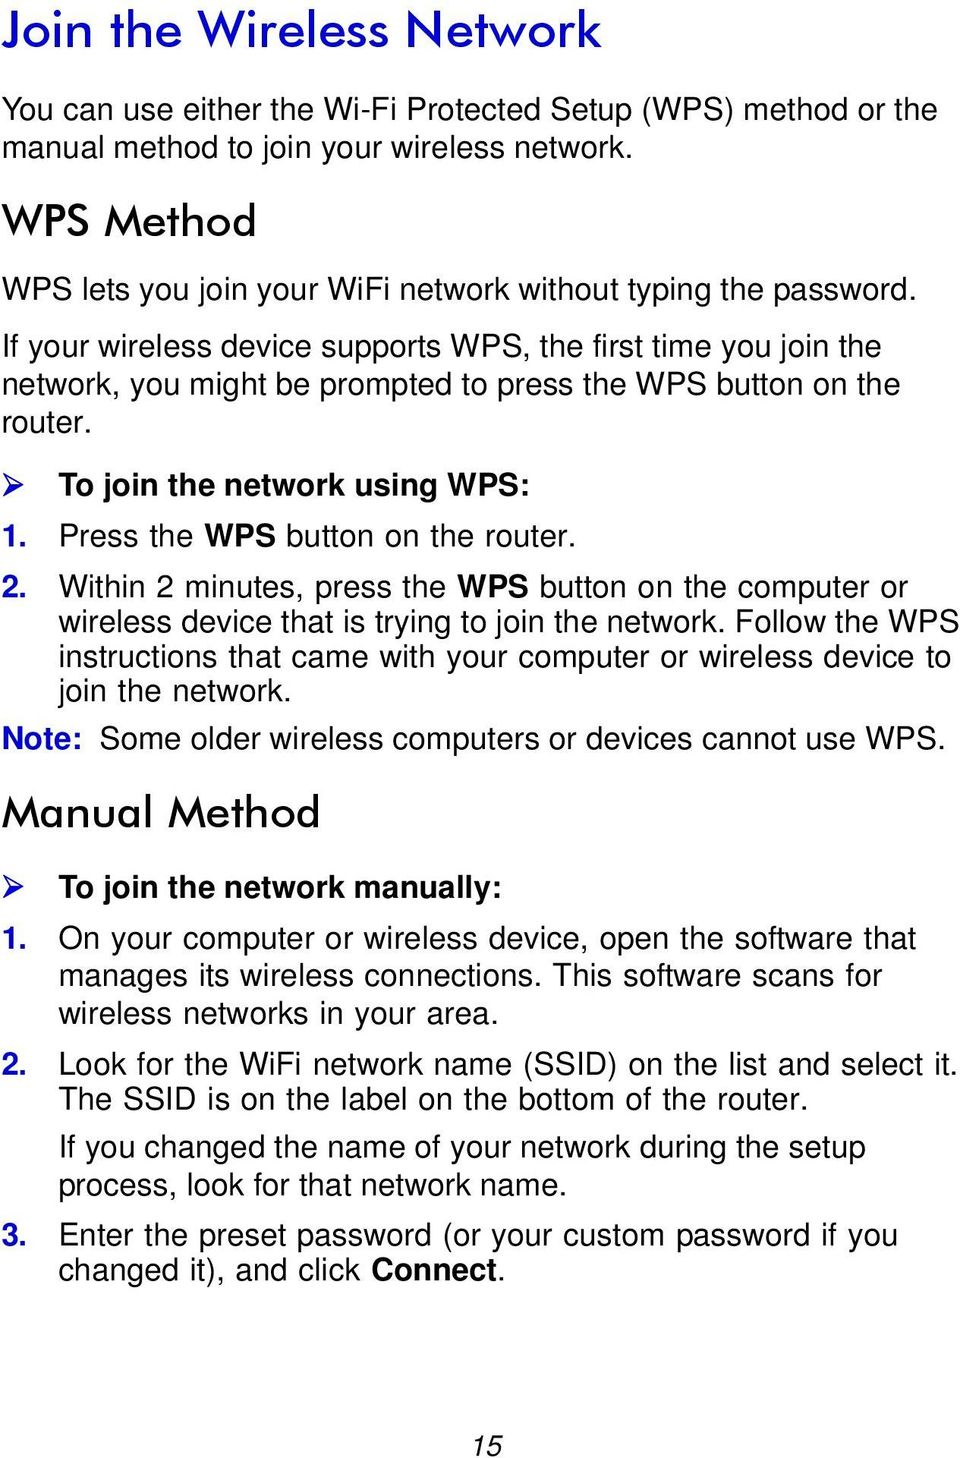 If your wireless device supports WPS, the first time you join the network, you might be prompted to press the WPS button on the router. To join the network using WPS: 1.